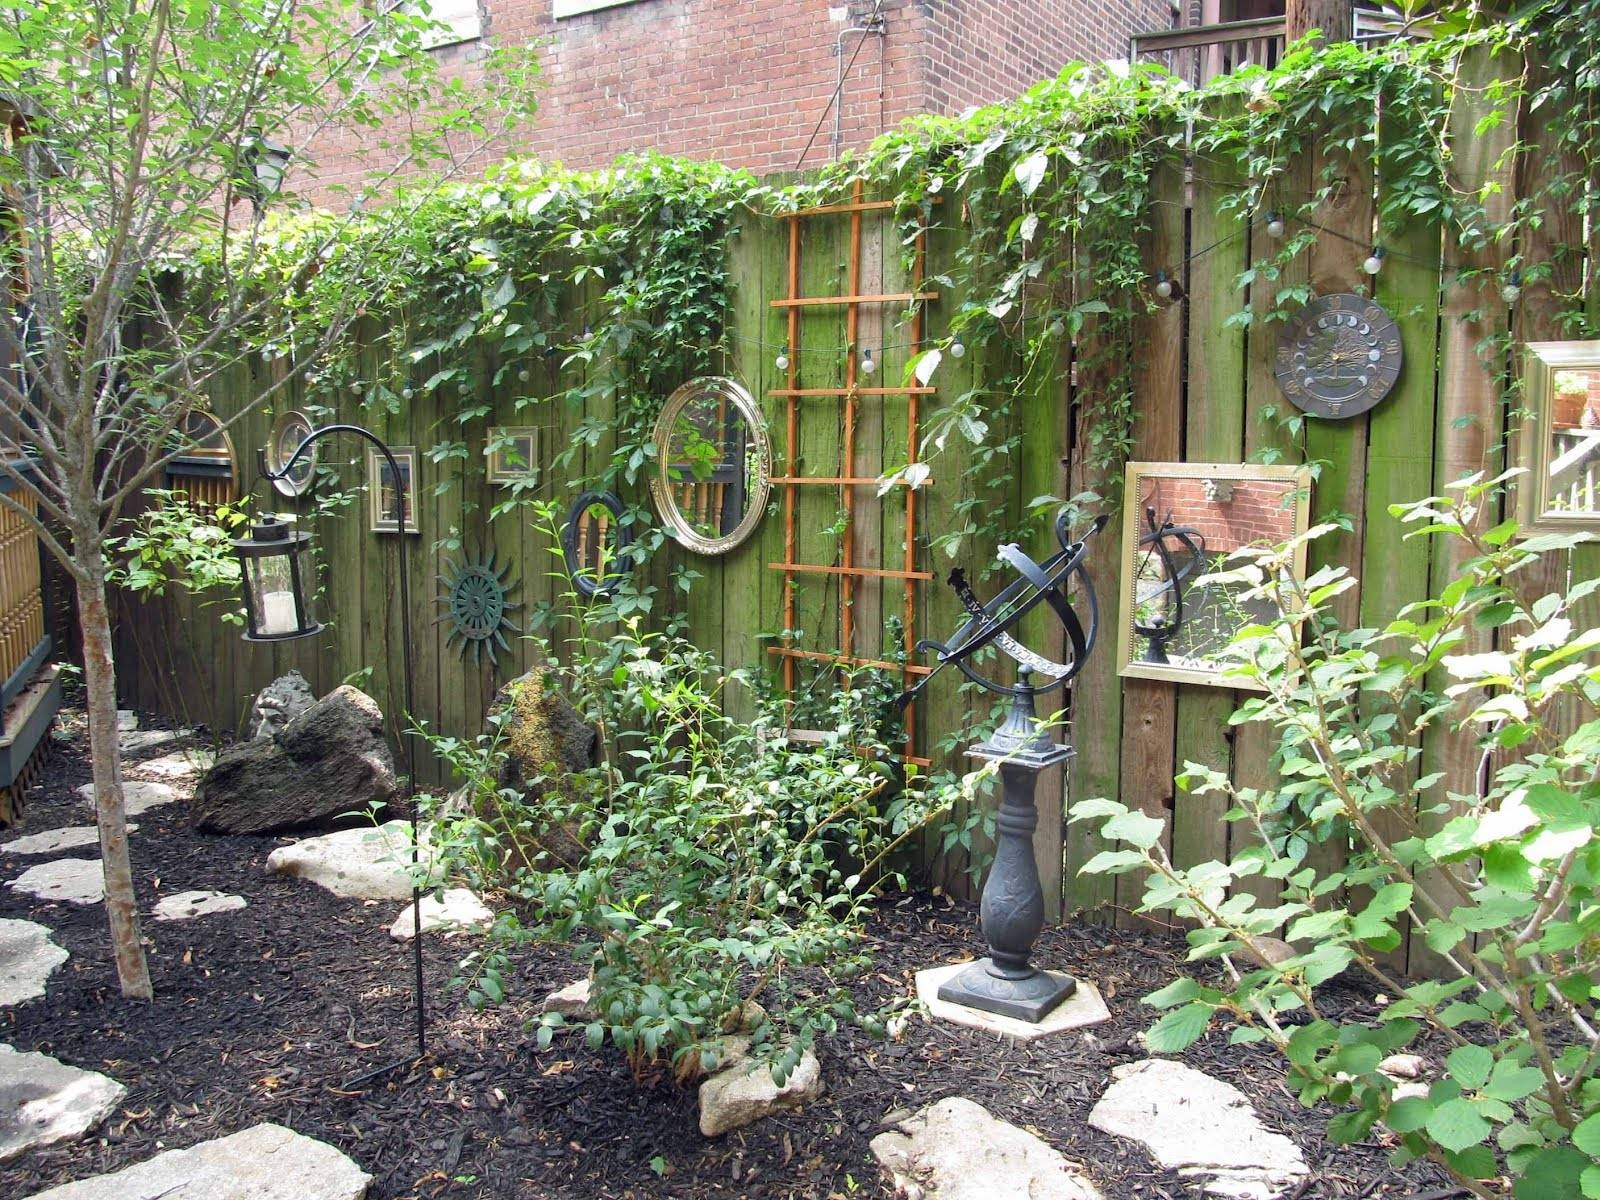 18 Dazzling Mirror Ideas For Your Garden - Garden Lovers Club regarding Garden Mirrors (Image 1 of 15)